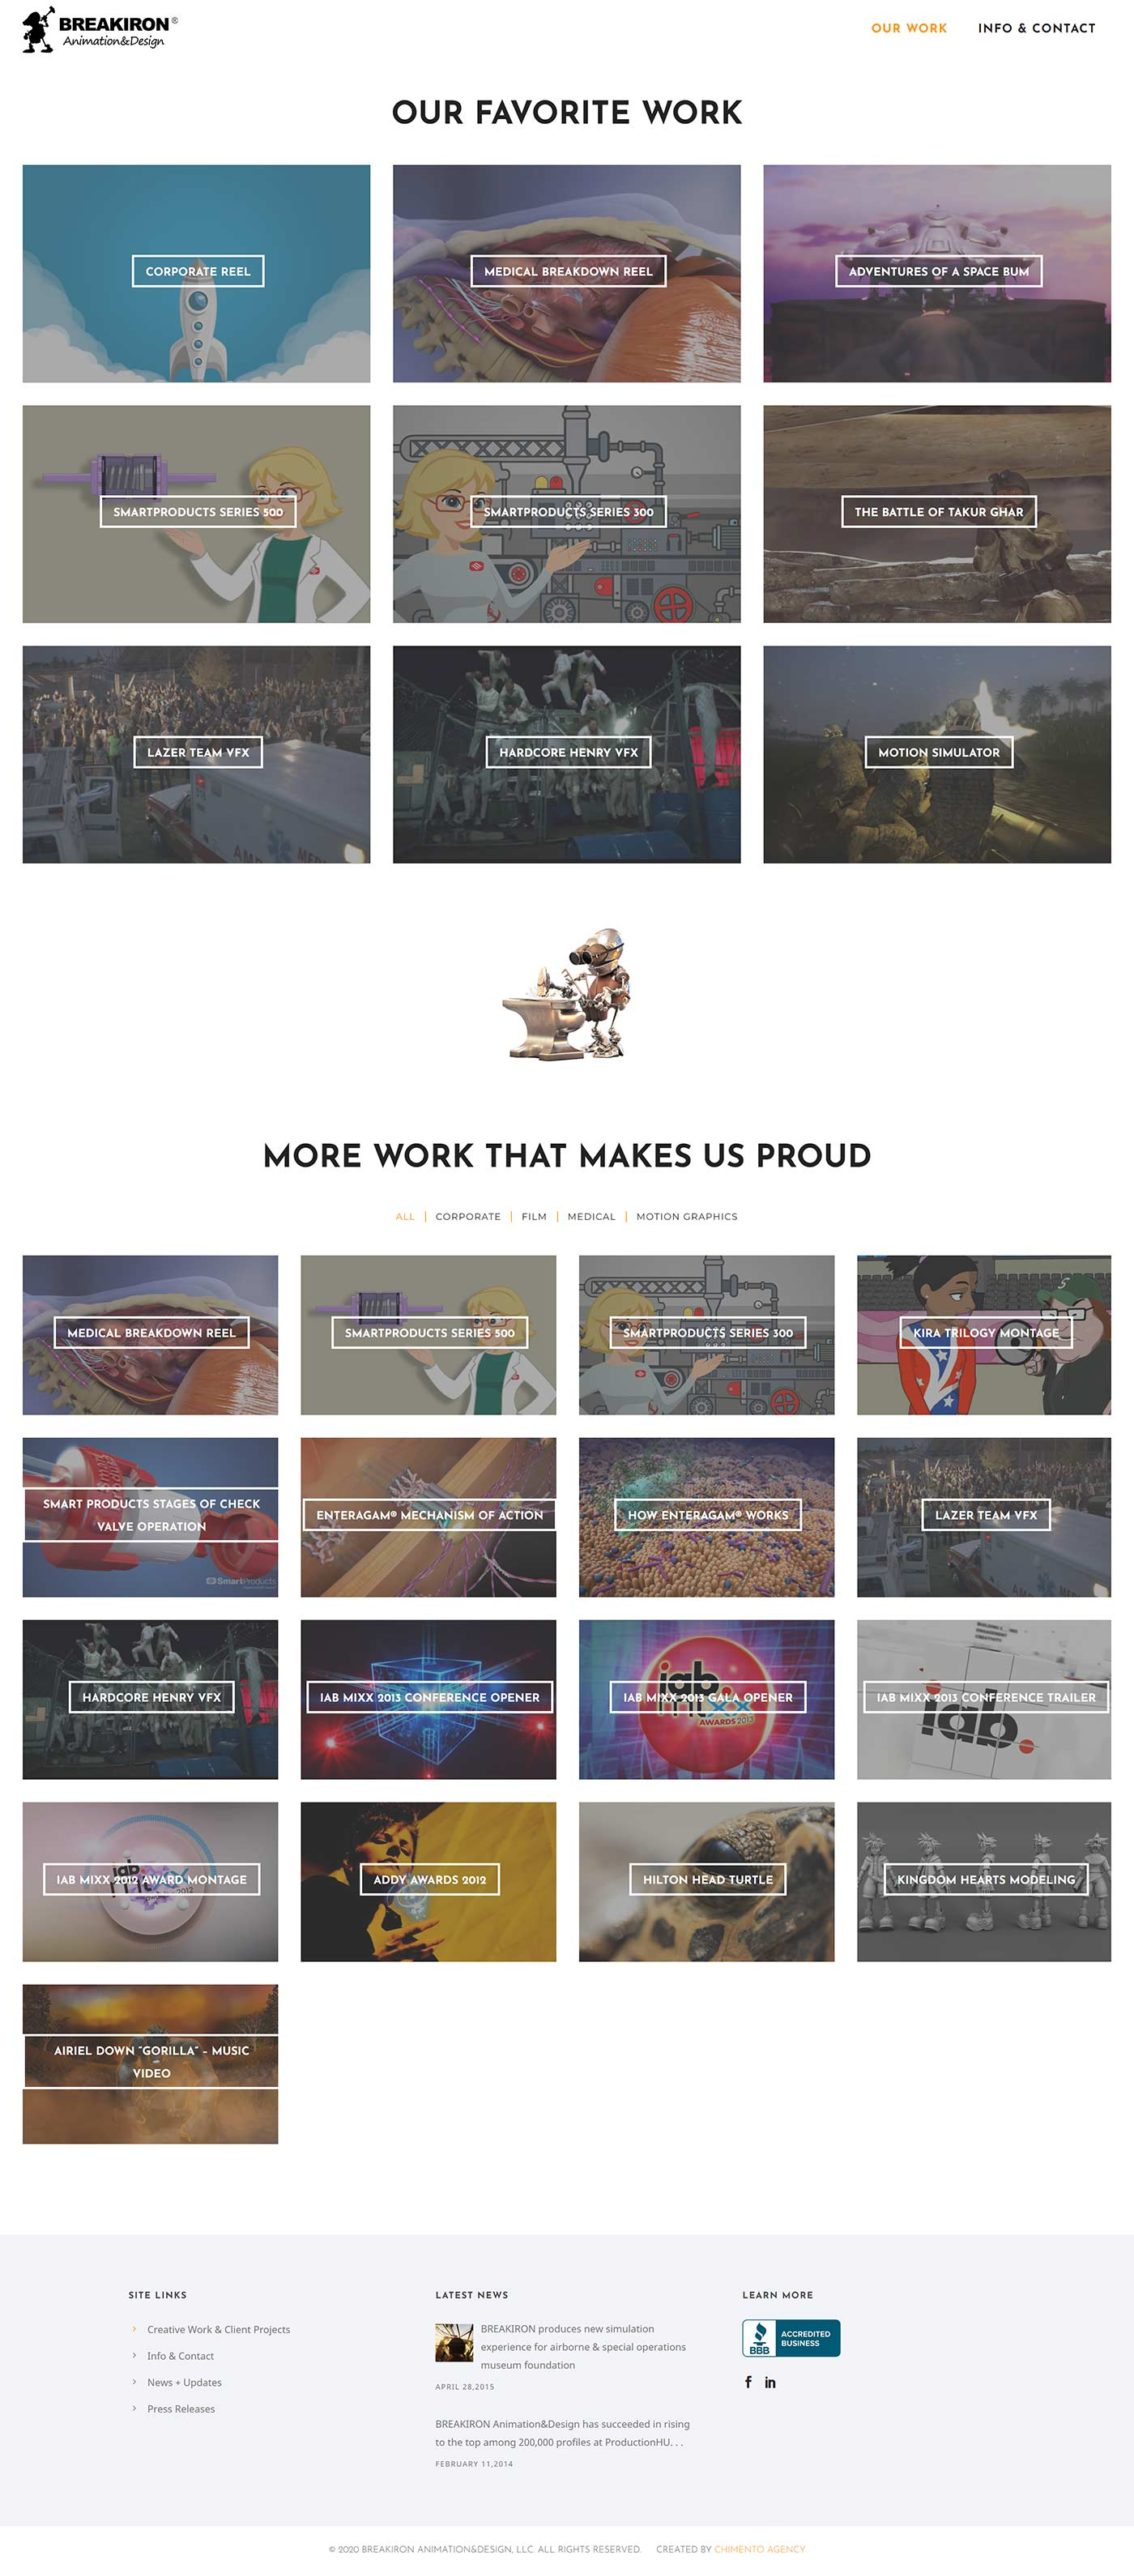 Our Work page on BREAKIRON.com 2020 website